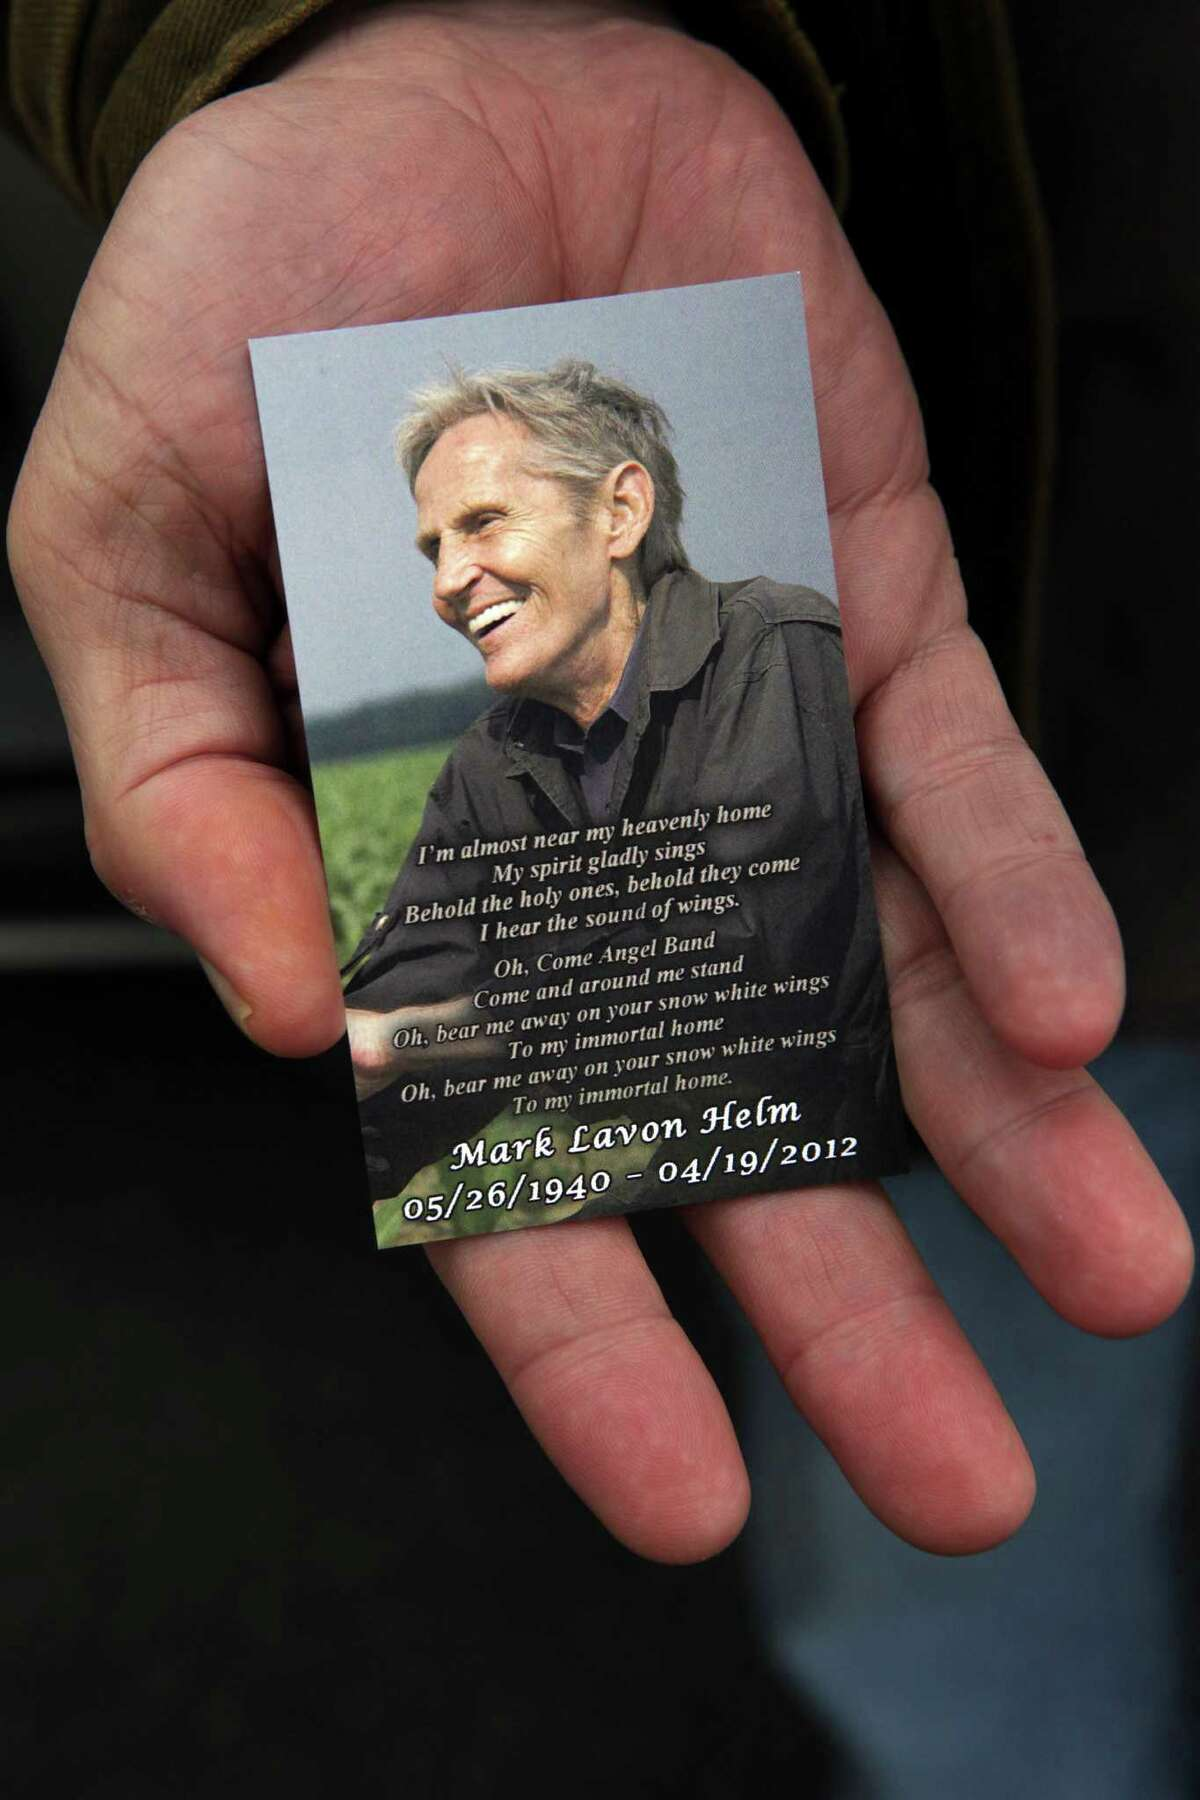 A card memorializing the late Levon Helm that was handed out at his wake in Woodstock, N.Y., April 26, 2012. Friends and fans came out in the thousands to attend the public wake of the artist, who died last week at the age of 71. (Suzanne DeChillo/The New York Times)